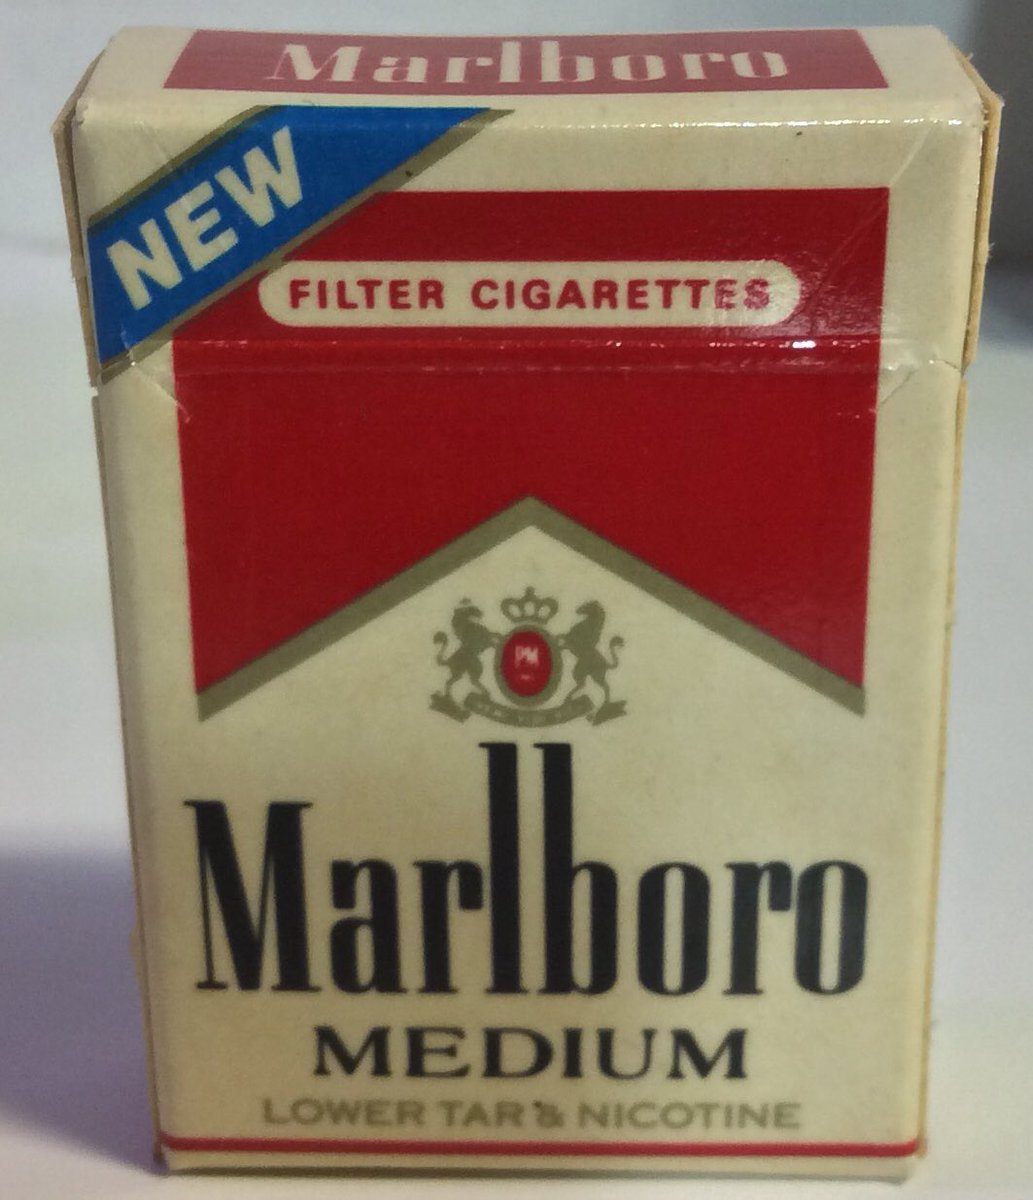 How much does a box of cigarettes Gauloises cost in Florida